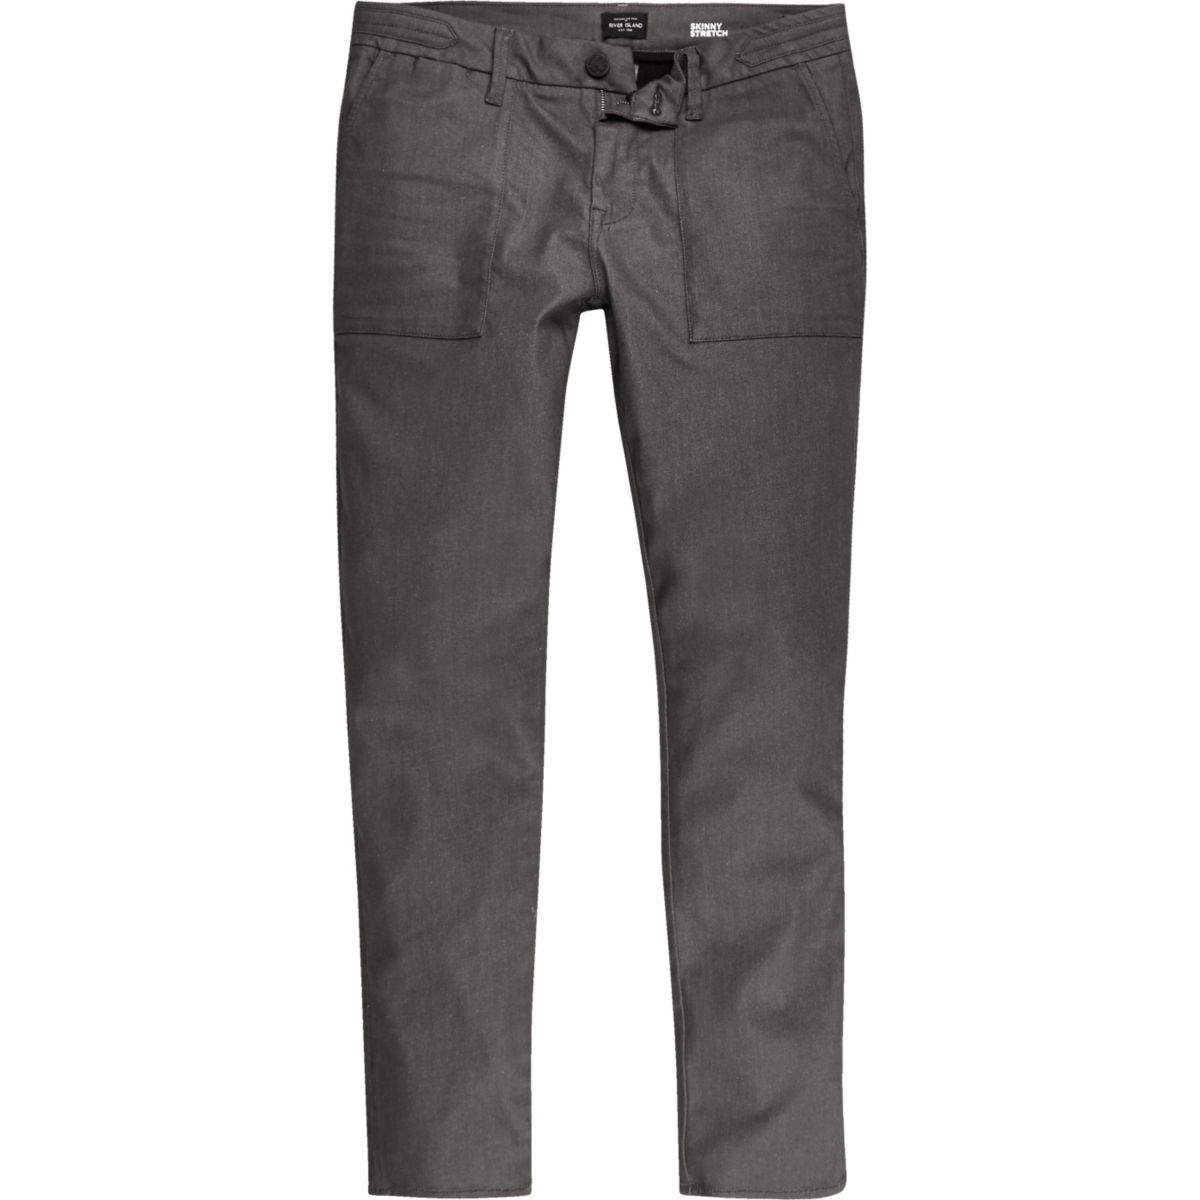 Brown Sid skinny stretch jeans